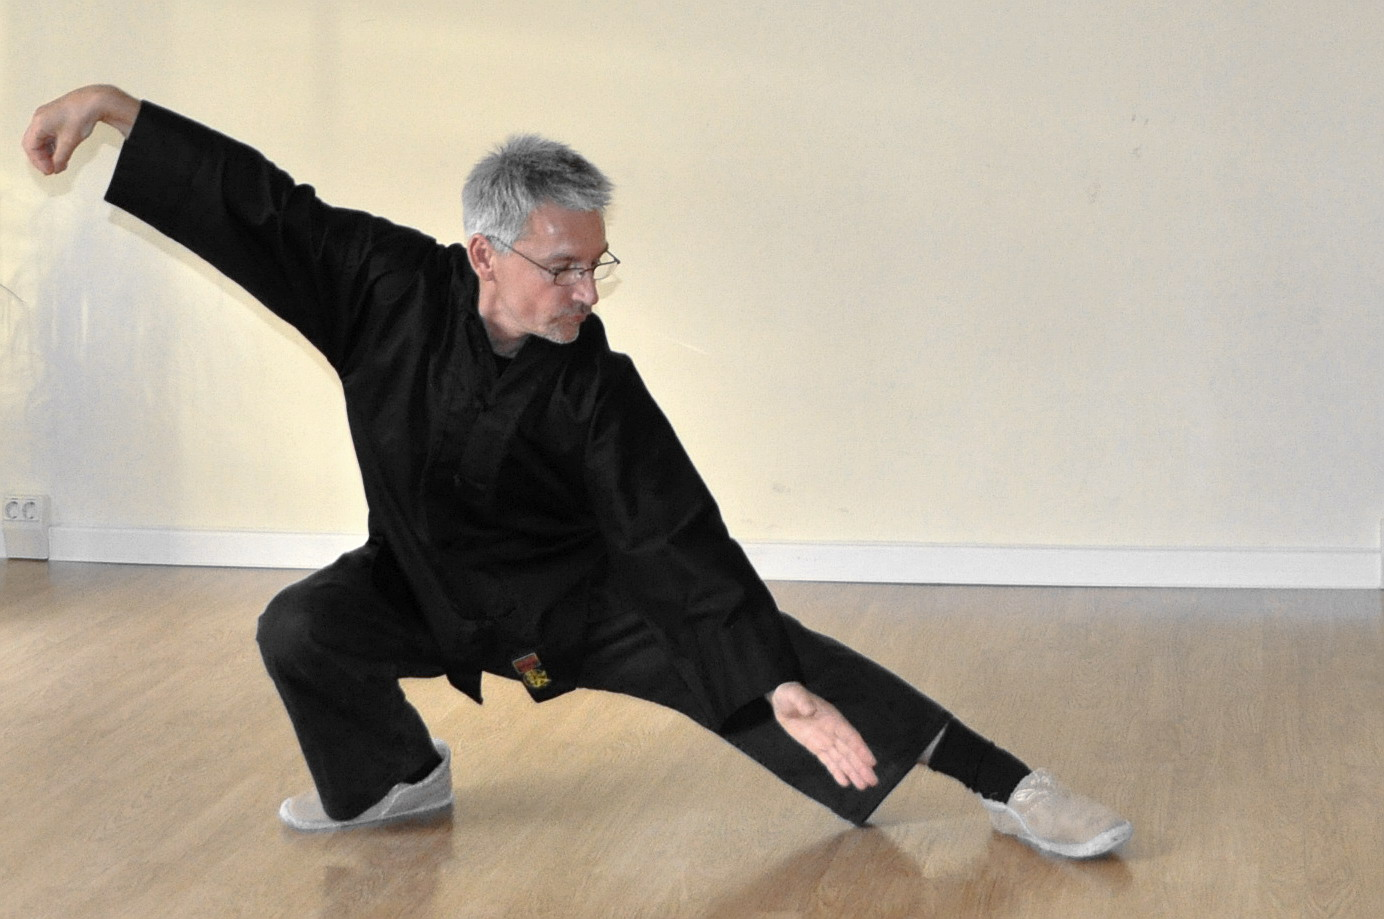 Heiko Förster, teacher for Tai Chi and Qi Gong